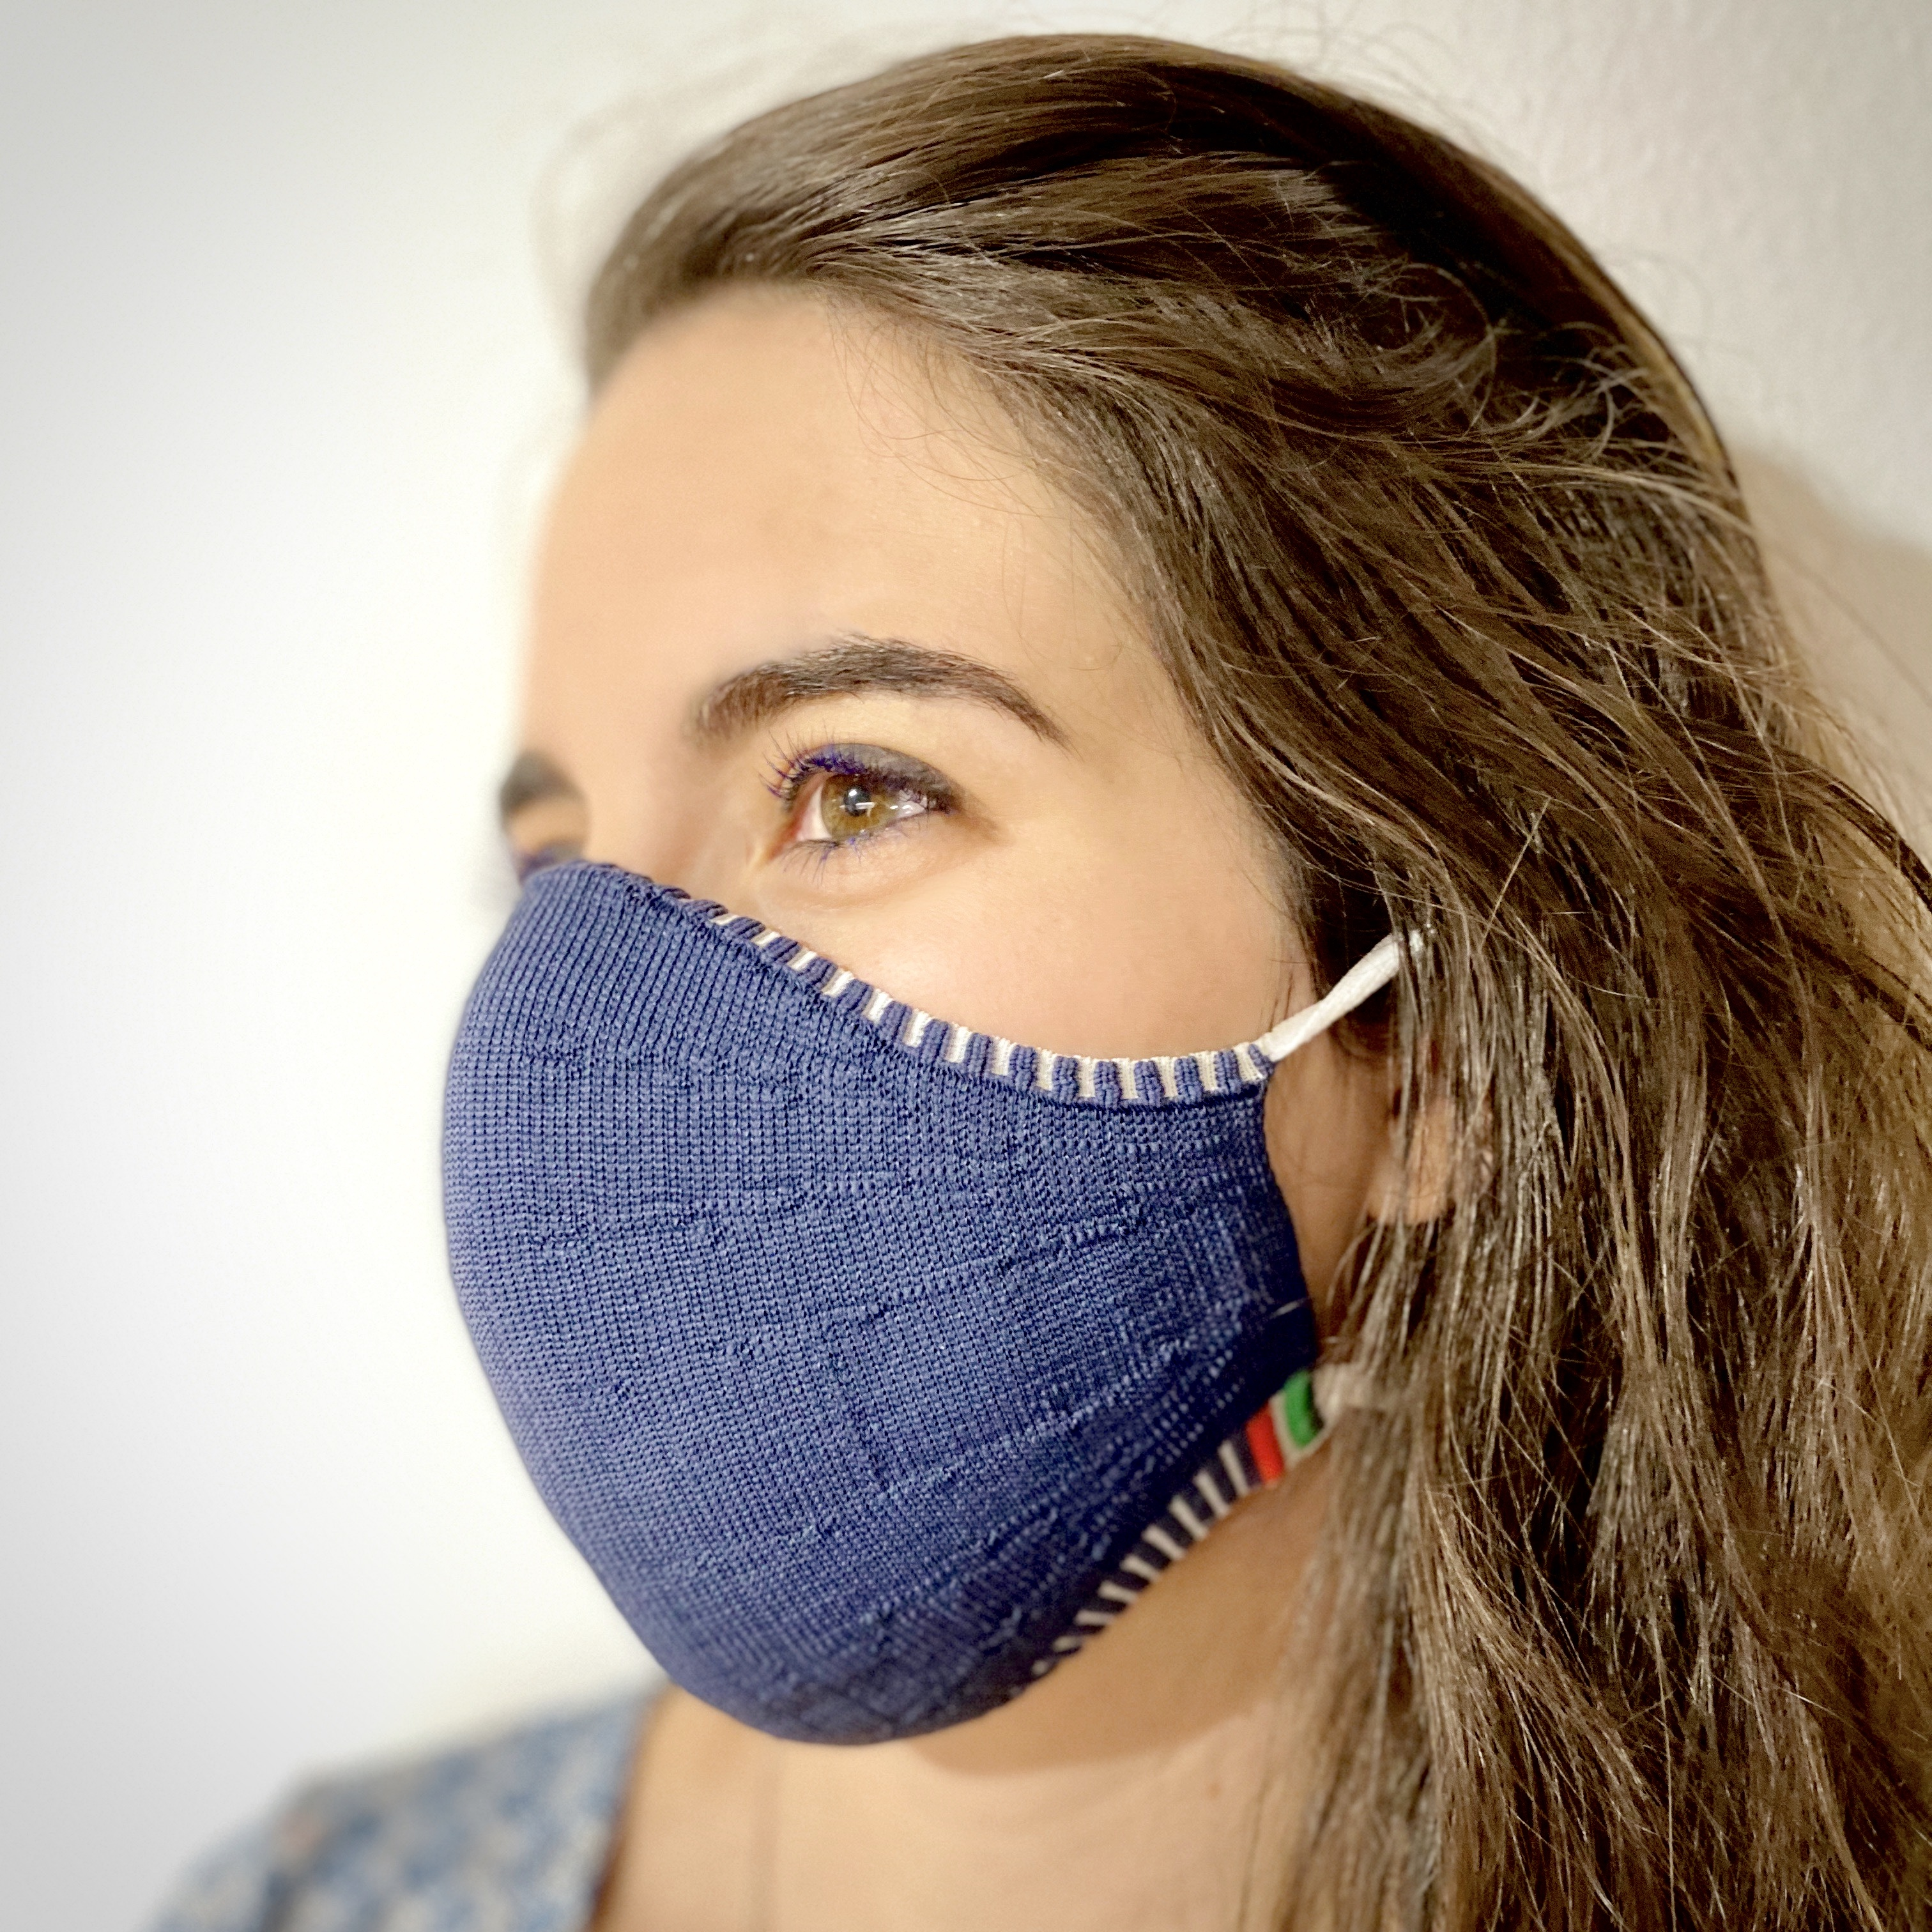 Protective face masks as a fashionable accessory – antibacterial, chic and washable